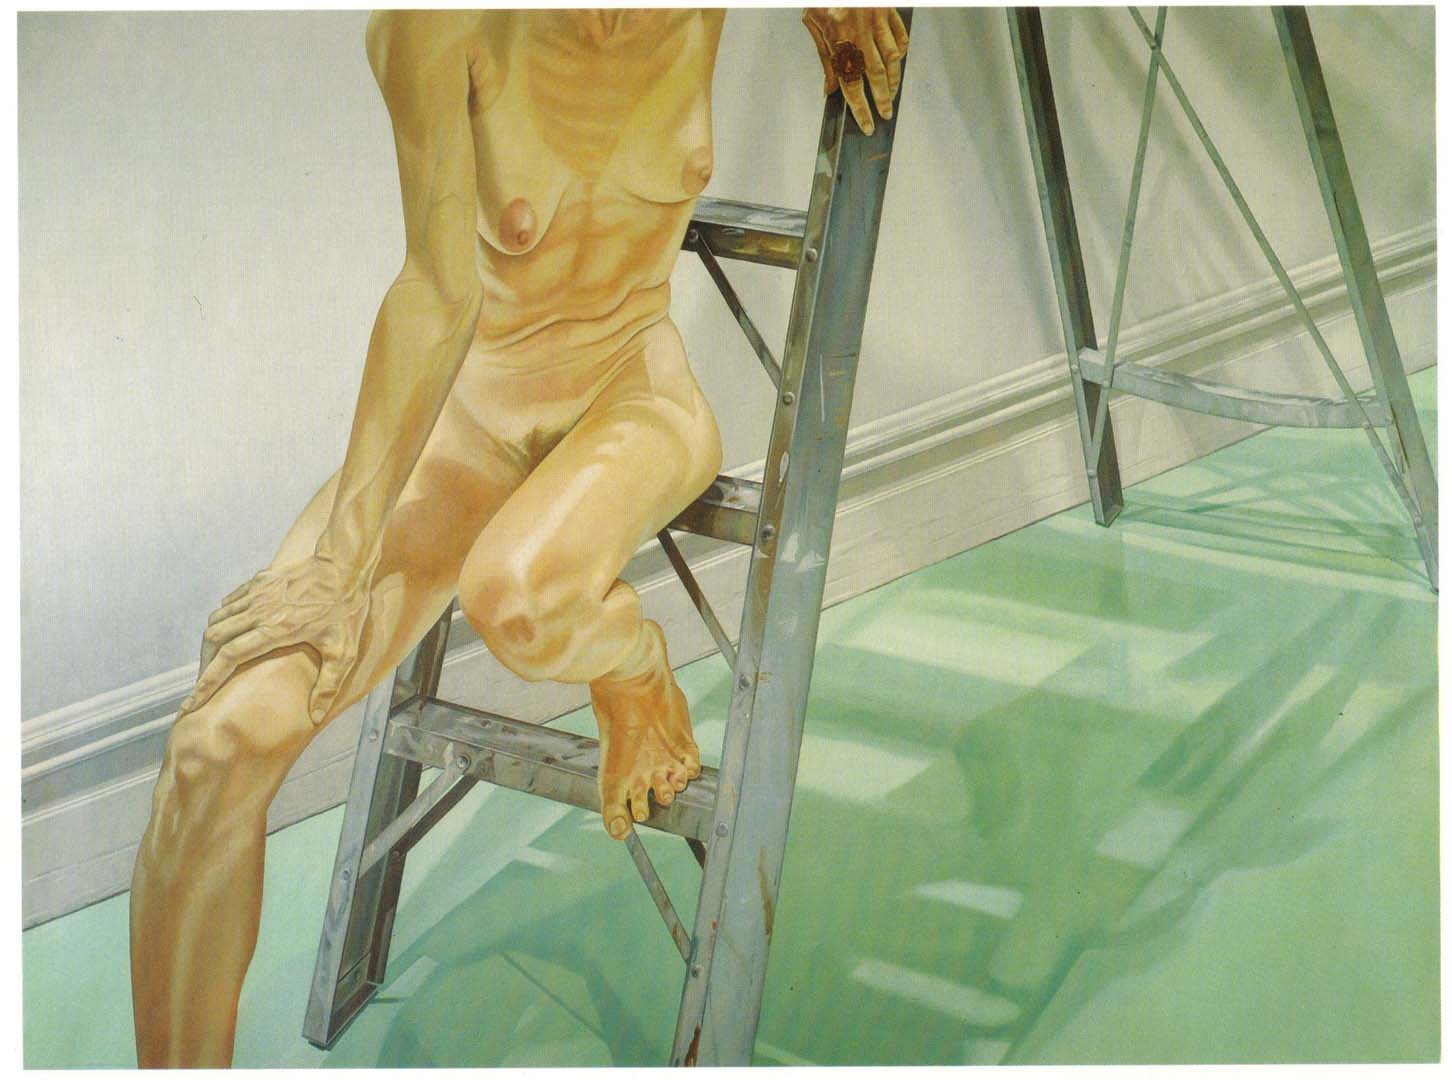 1976 Female Model on Ladder Oil on Canvas 72 x 96